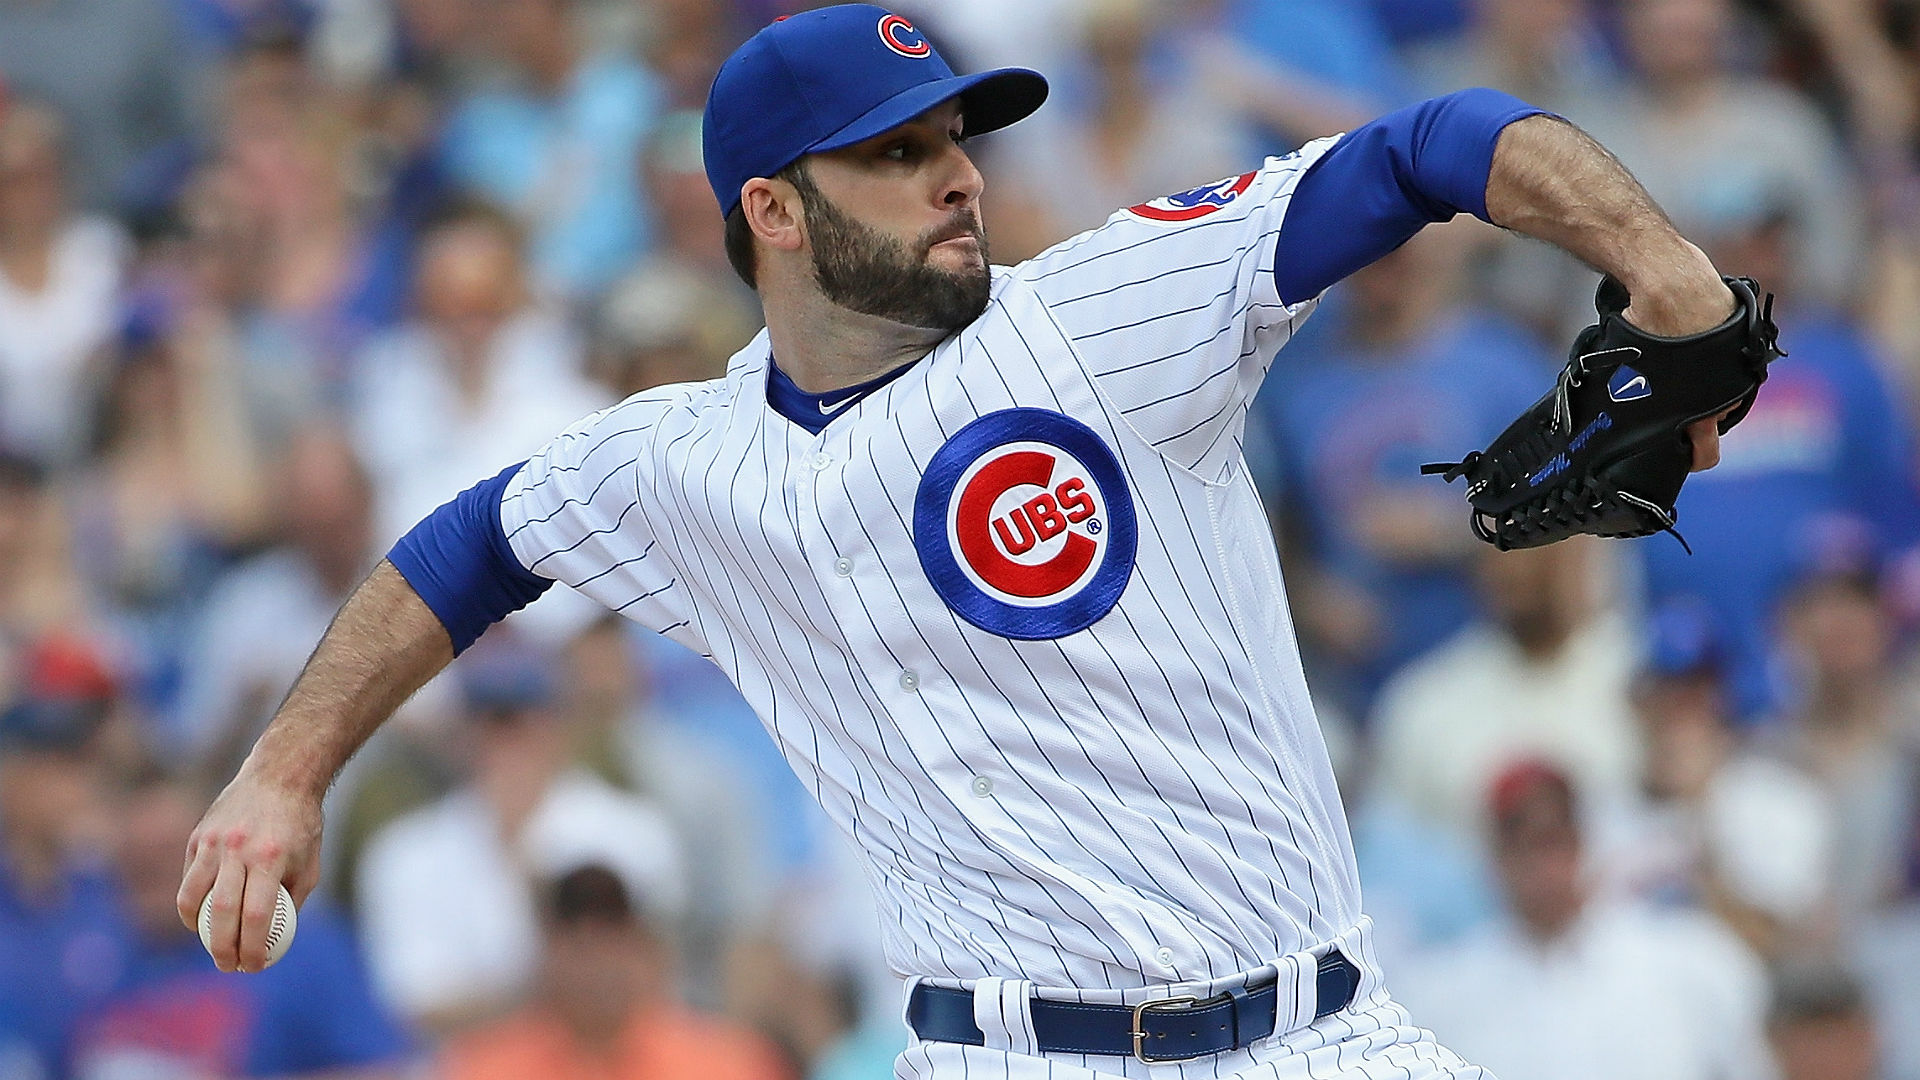 Brandon Morrow, Chicago Cubs closer, shut down for season with bone bruise